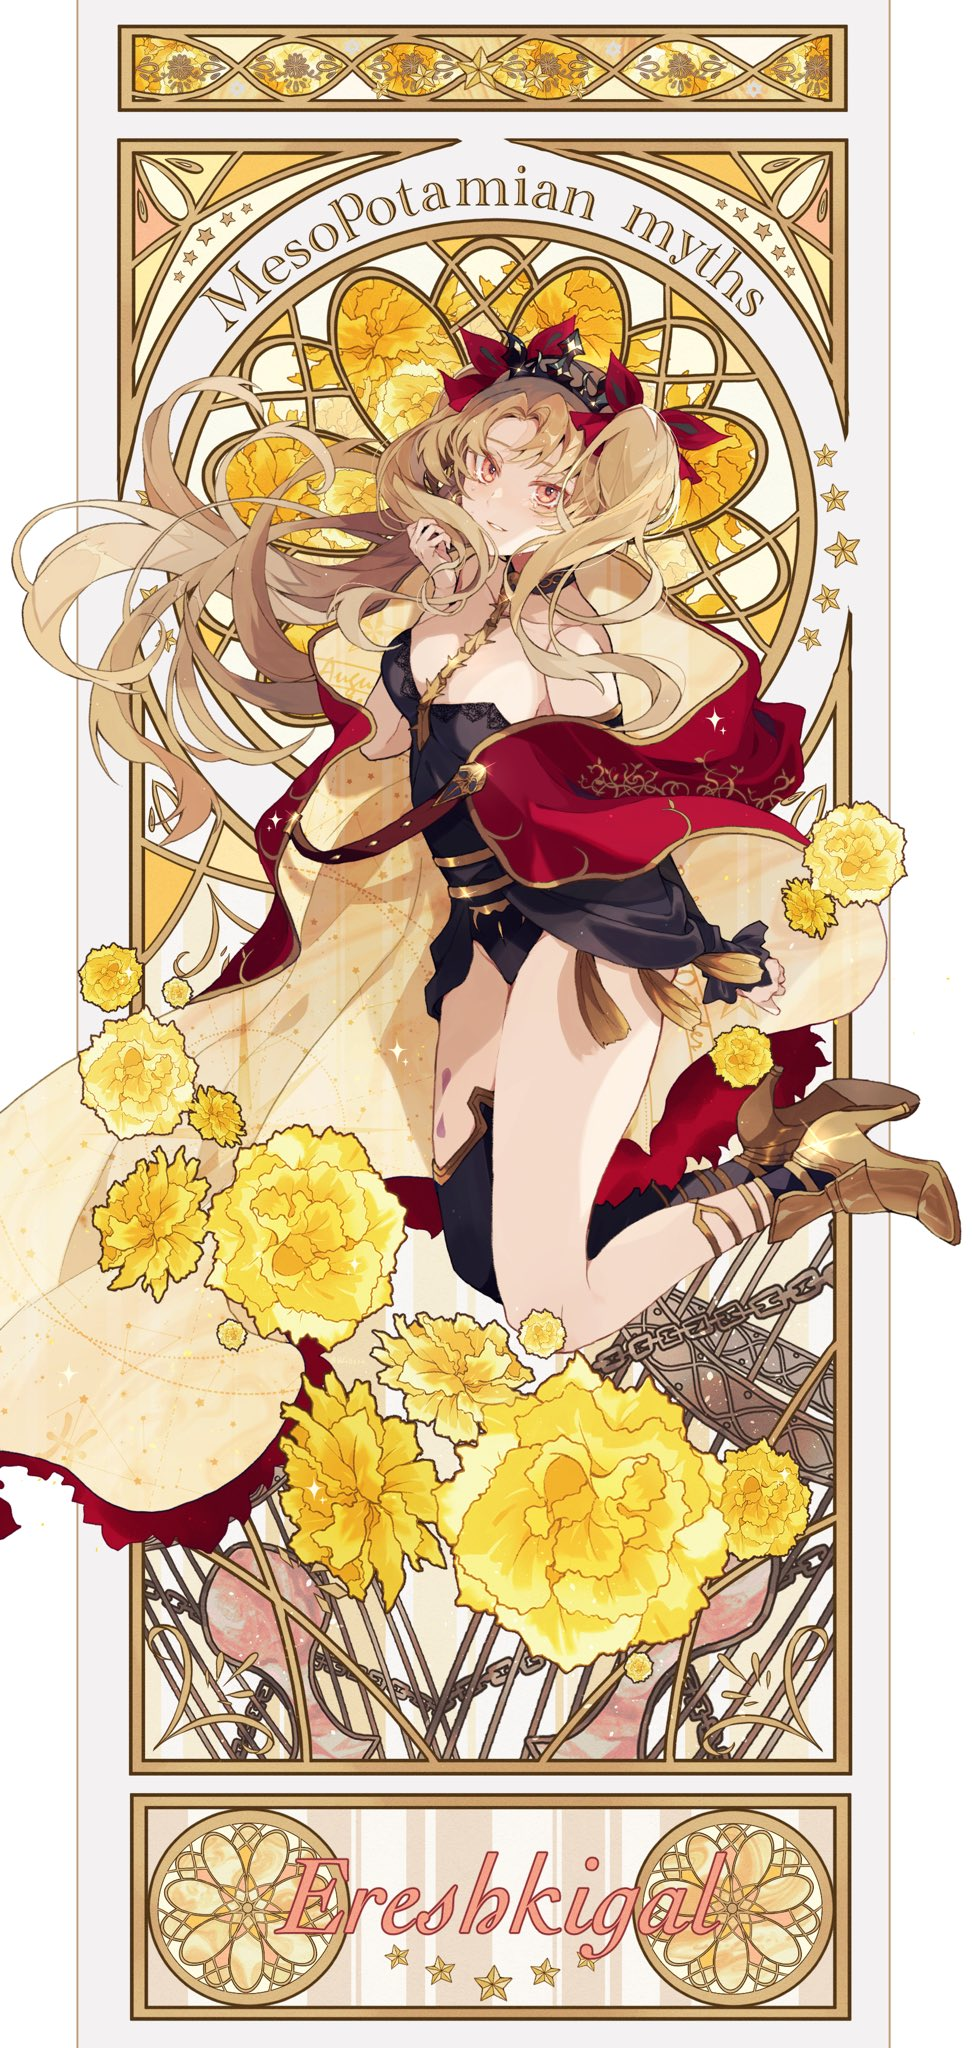 1girl ankle_boots black_leotard blonde_hair blush boots bow breasts cape character_name cowboy_shot crown detached_sleeves english_text ereshkigal_(fate/grand_order) fate/grand_order fate_(series) floating_hair hair_bow hand_up high_heel_boots high_heels highres leotard long_hair long_sleeves looking_at_viewer medium_breasts orange_eyes parted_lips pink_eyes red_bow red_cape satsuki_(miicat) simple_background single_thighhigh smile solo spine standing strapless strapless_leotard thigh-highs twintails two-sided_cape two-sided_fabric white_background